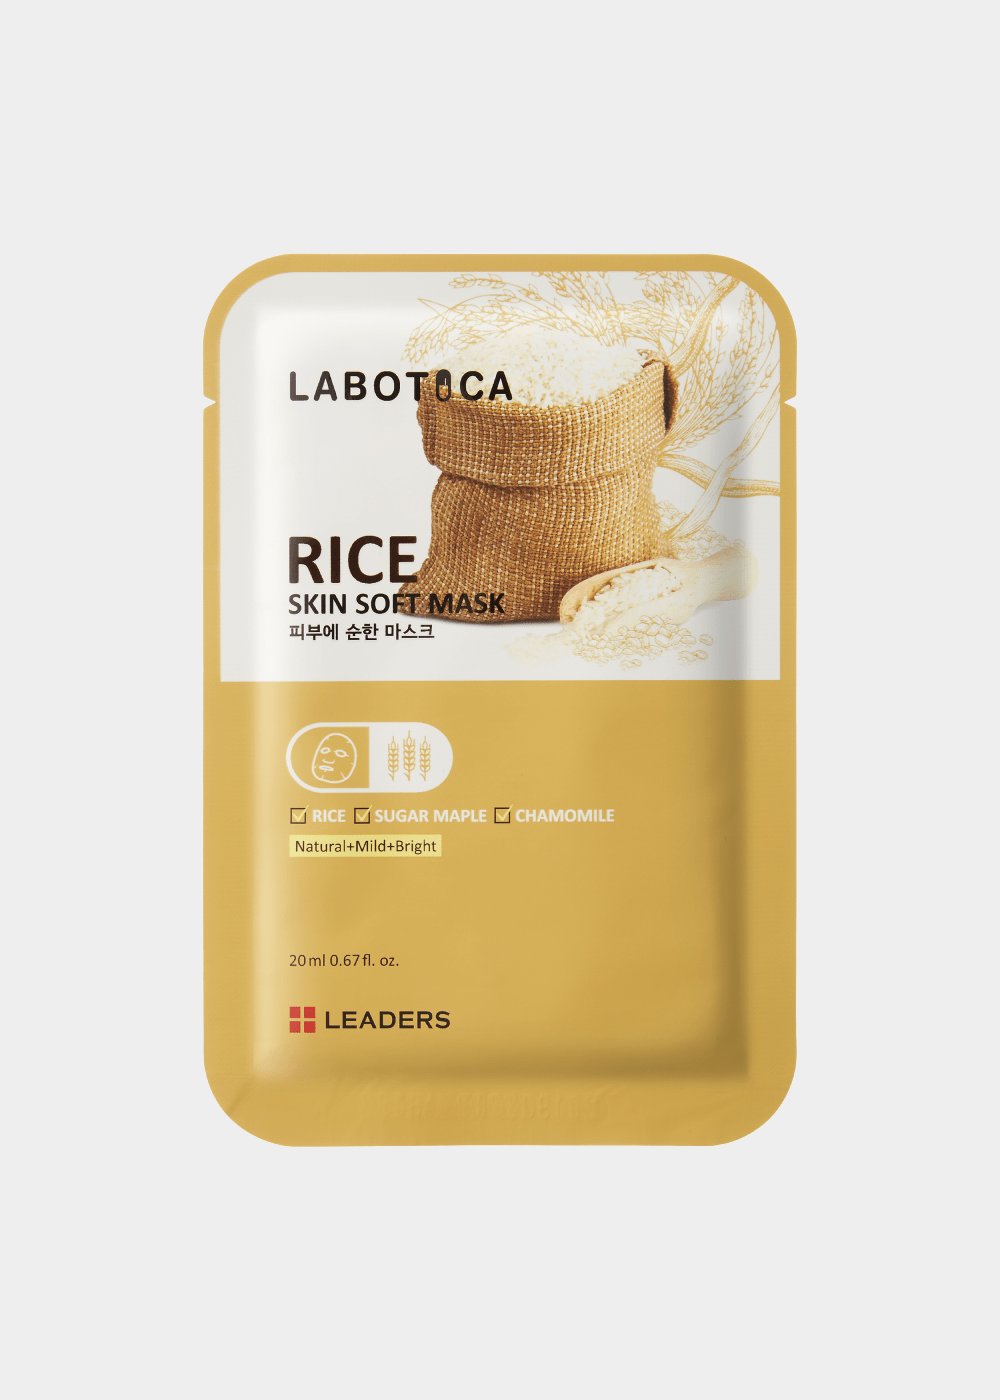 labotica-rice-editada